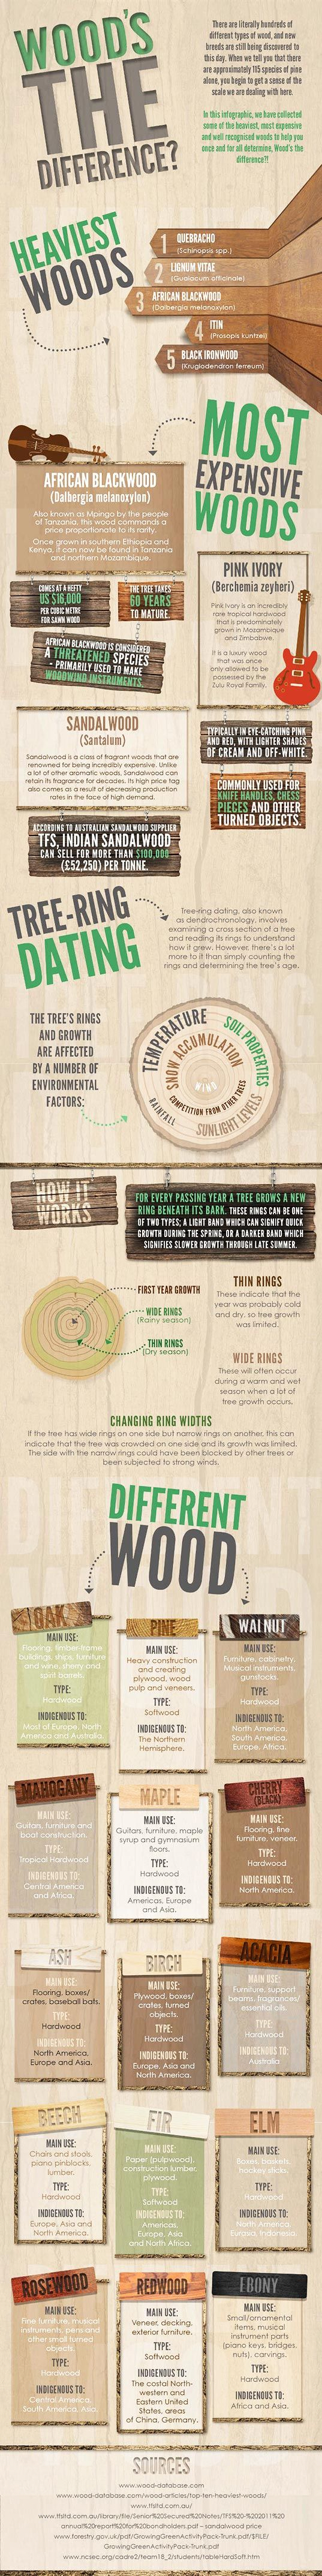 INFOGRAPHIC: Wood's the Difference? | My WoodShop ...